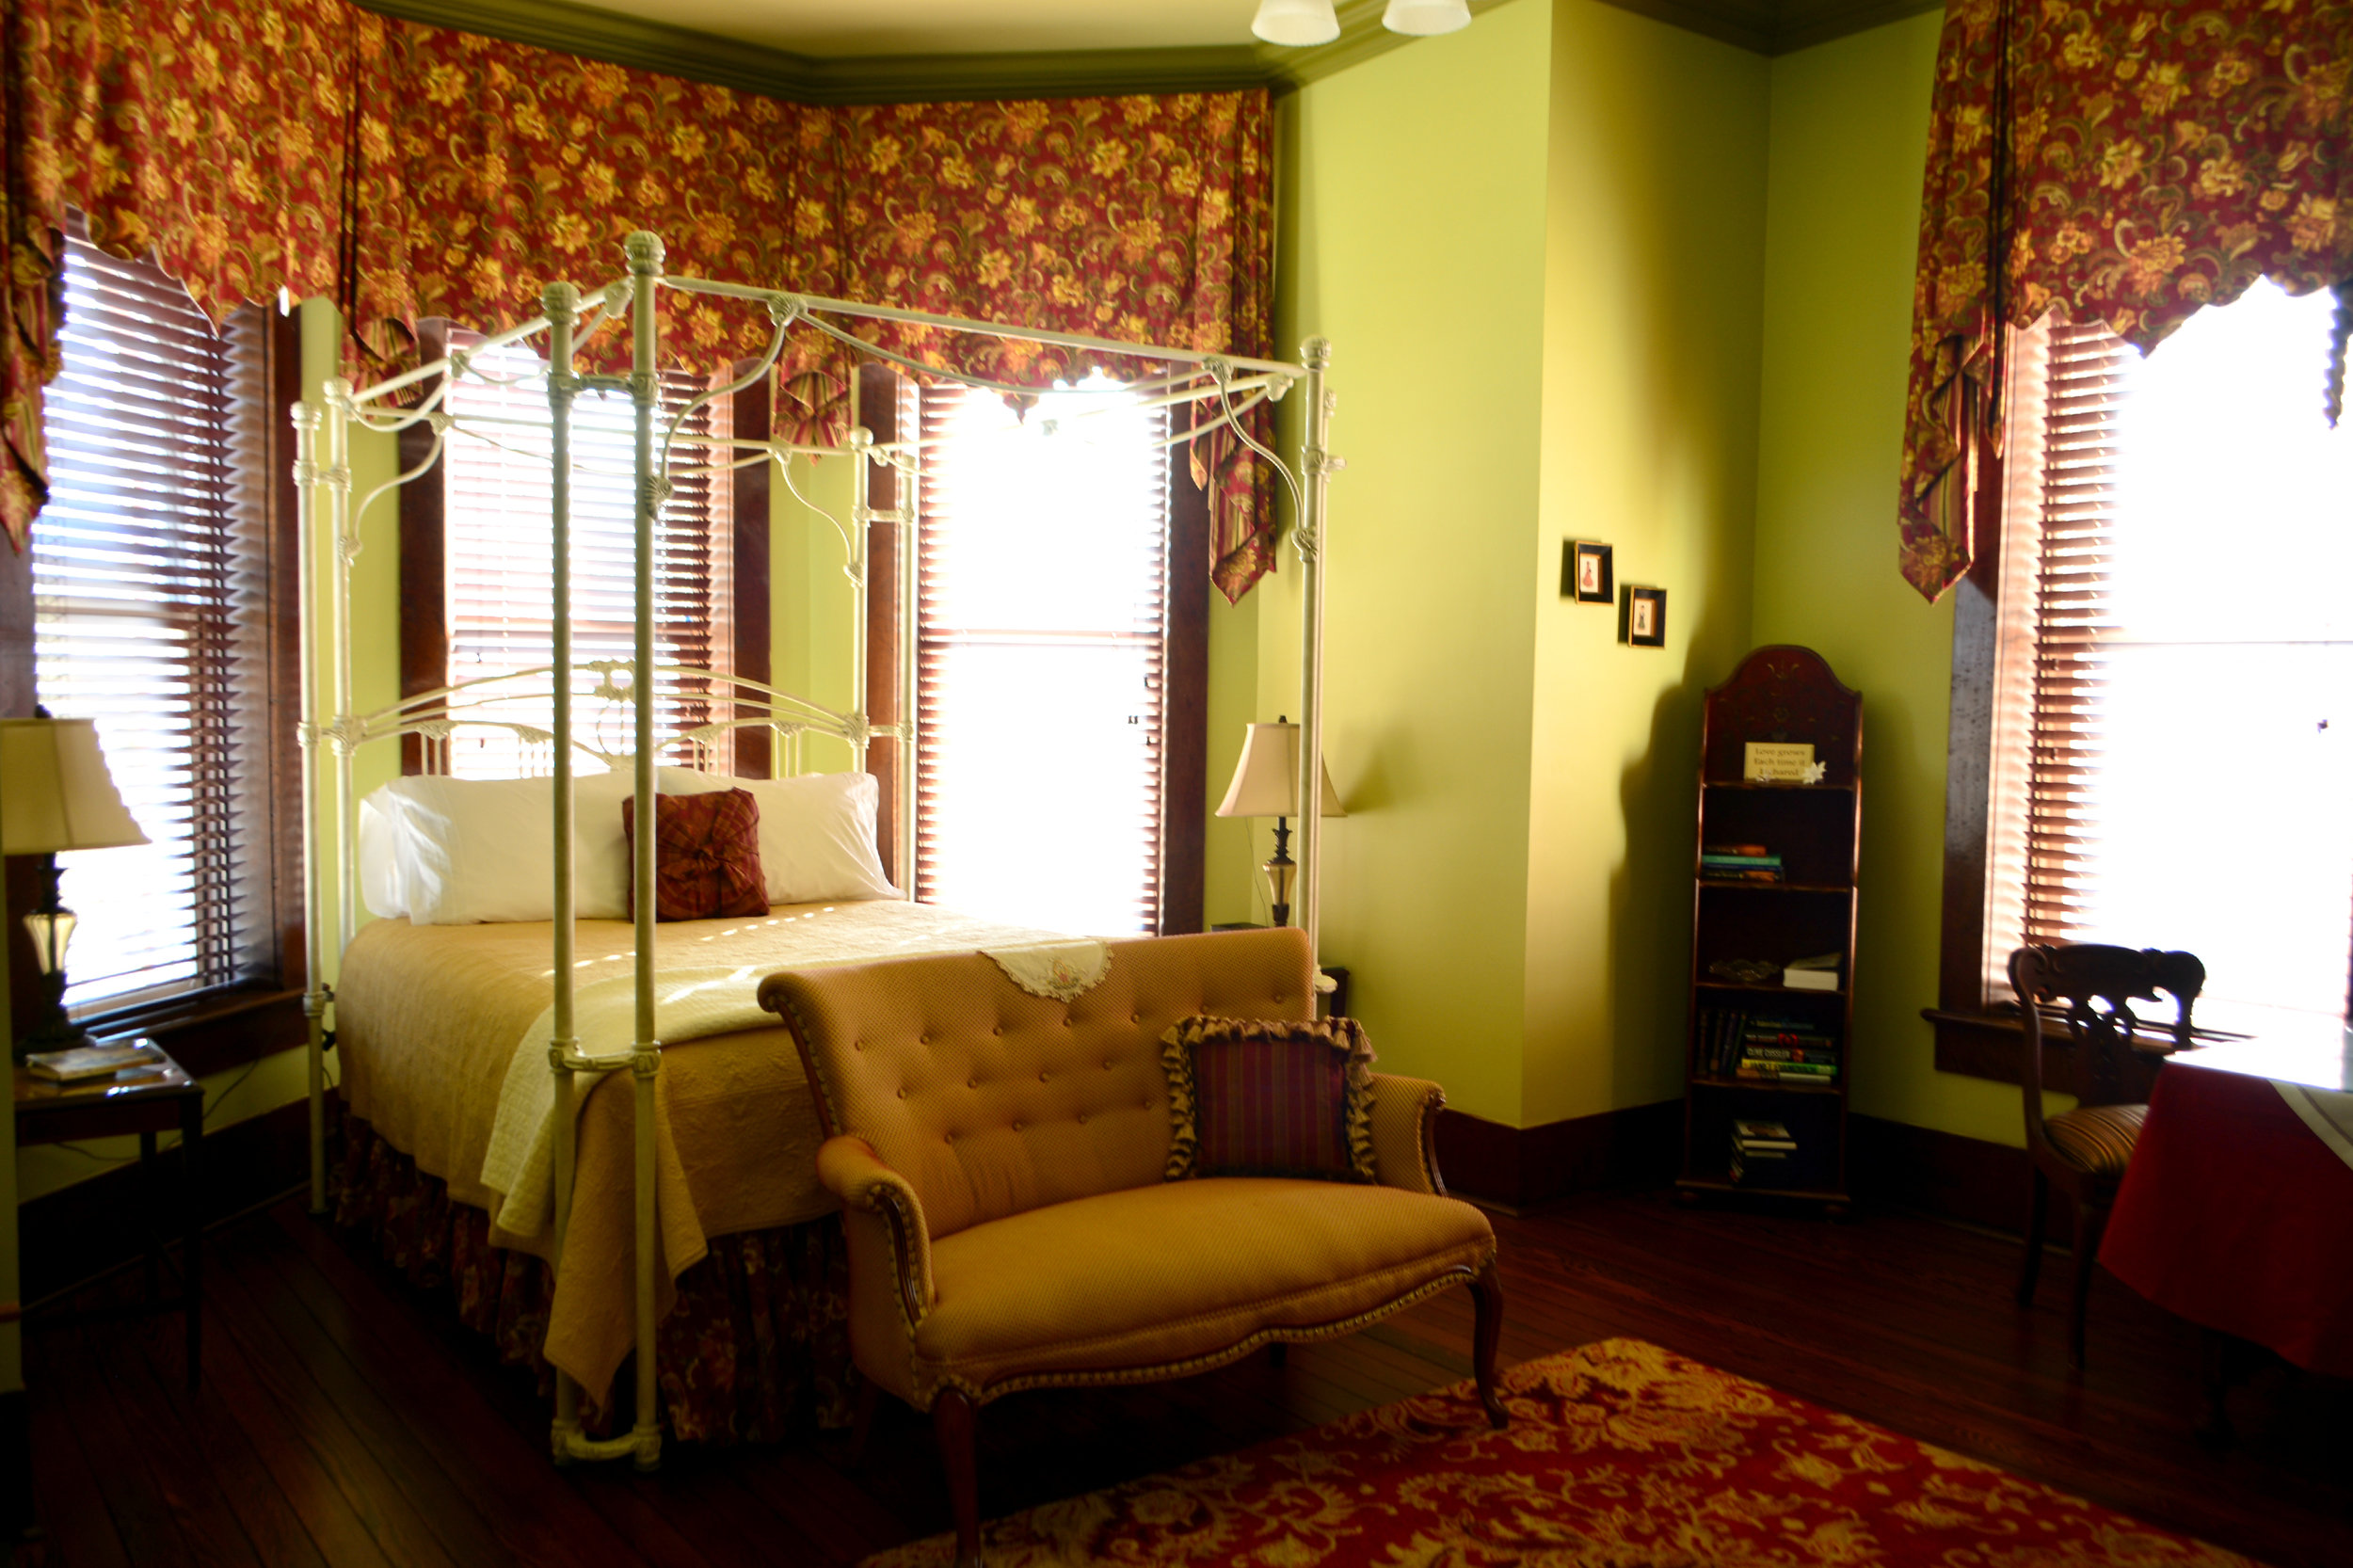 Bay Room - with its 4-poster bed framed by a tall bay window?